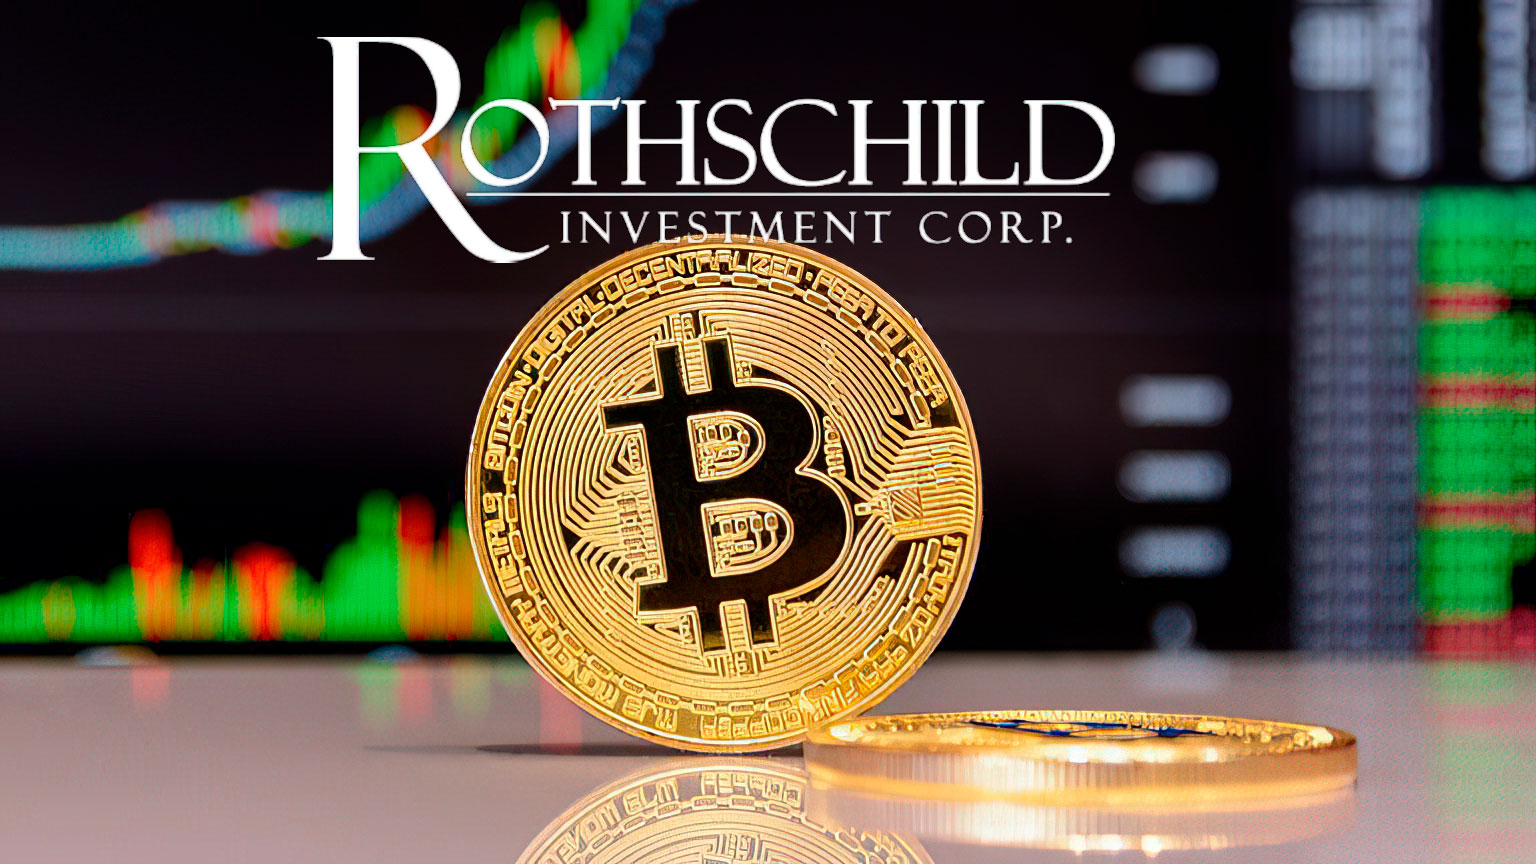 Rothschild-Investment-Corporation-Bitcoin